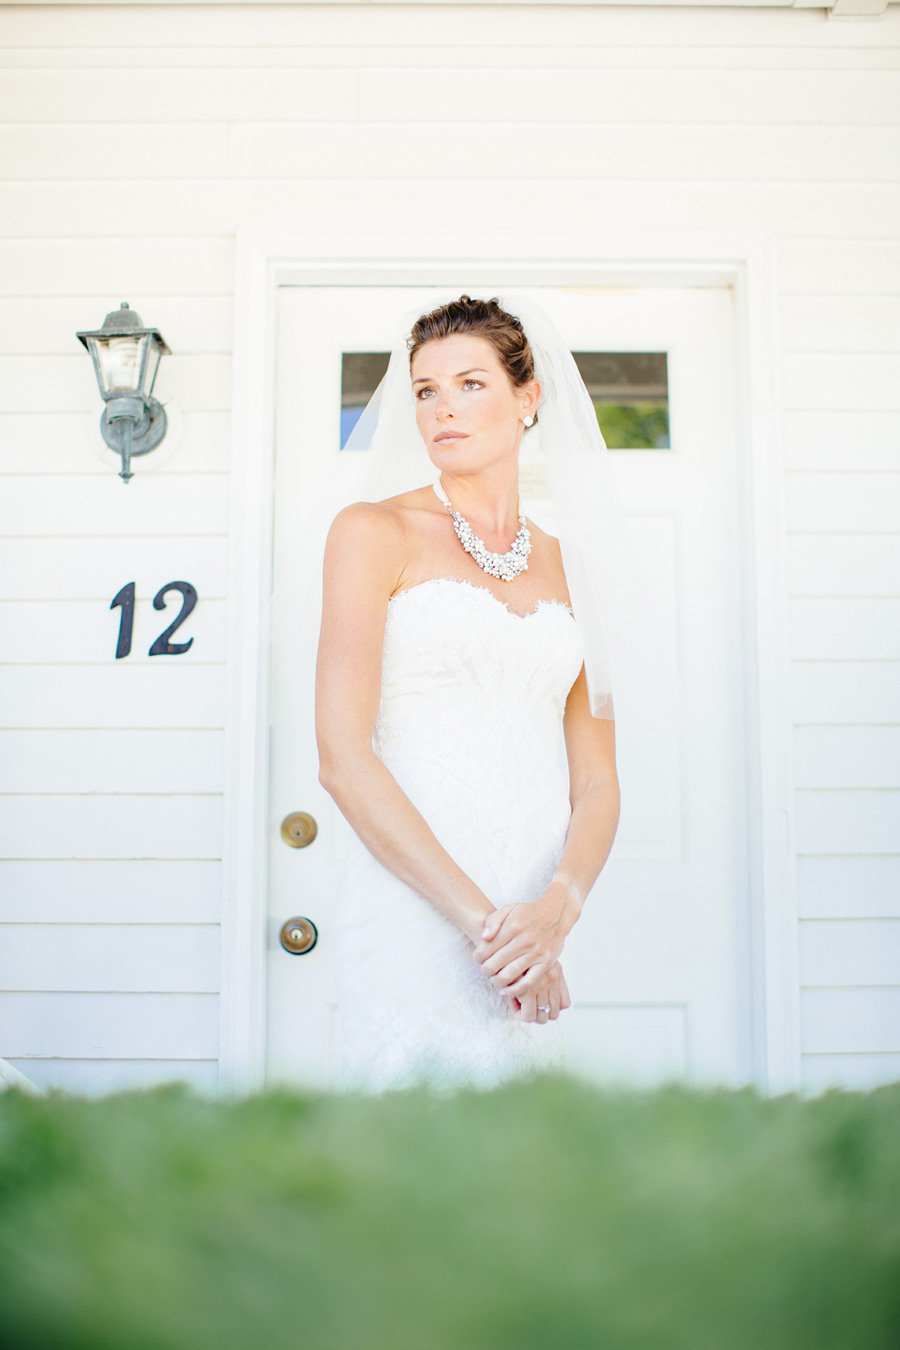 Michaeleen bridal portrait in Wolfeboro, NH at the Inn on the Main